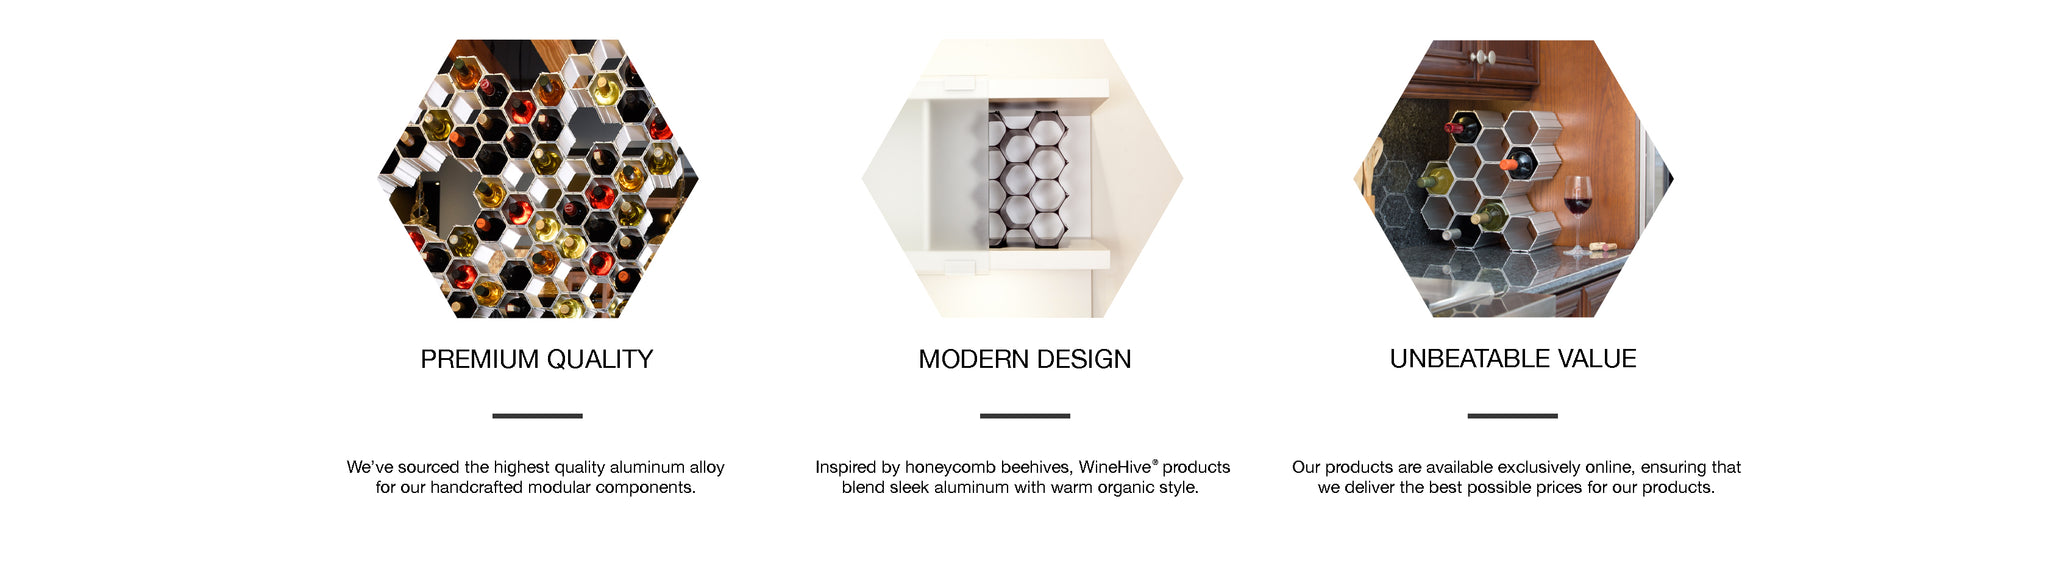 WineHive Quality Modern Design Value